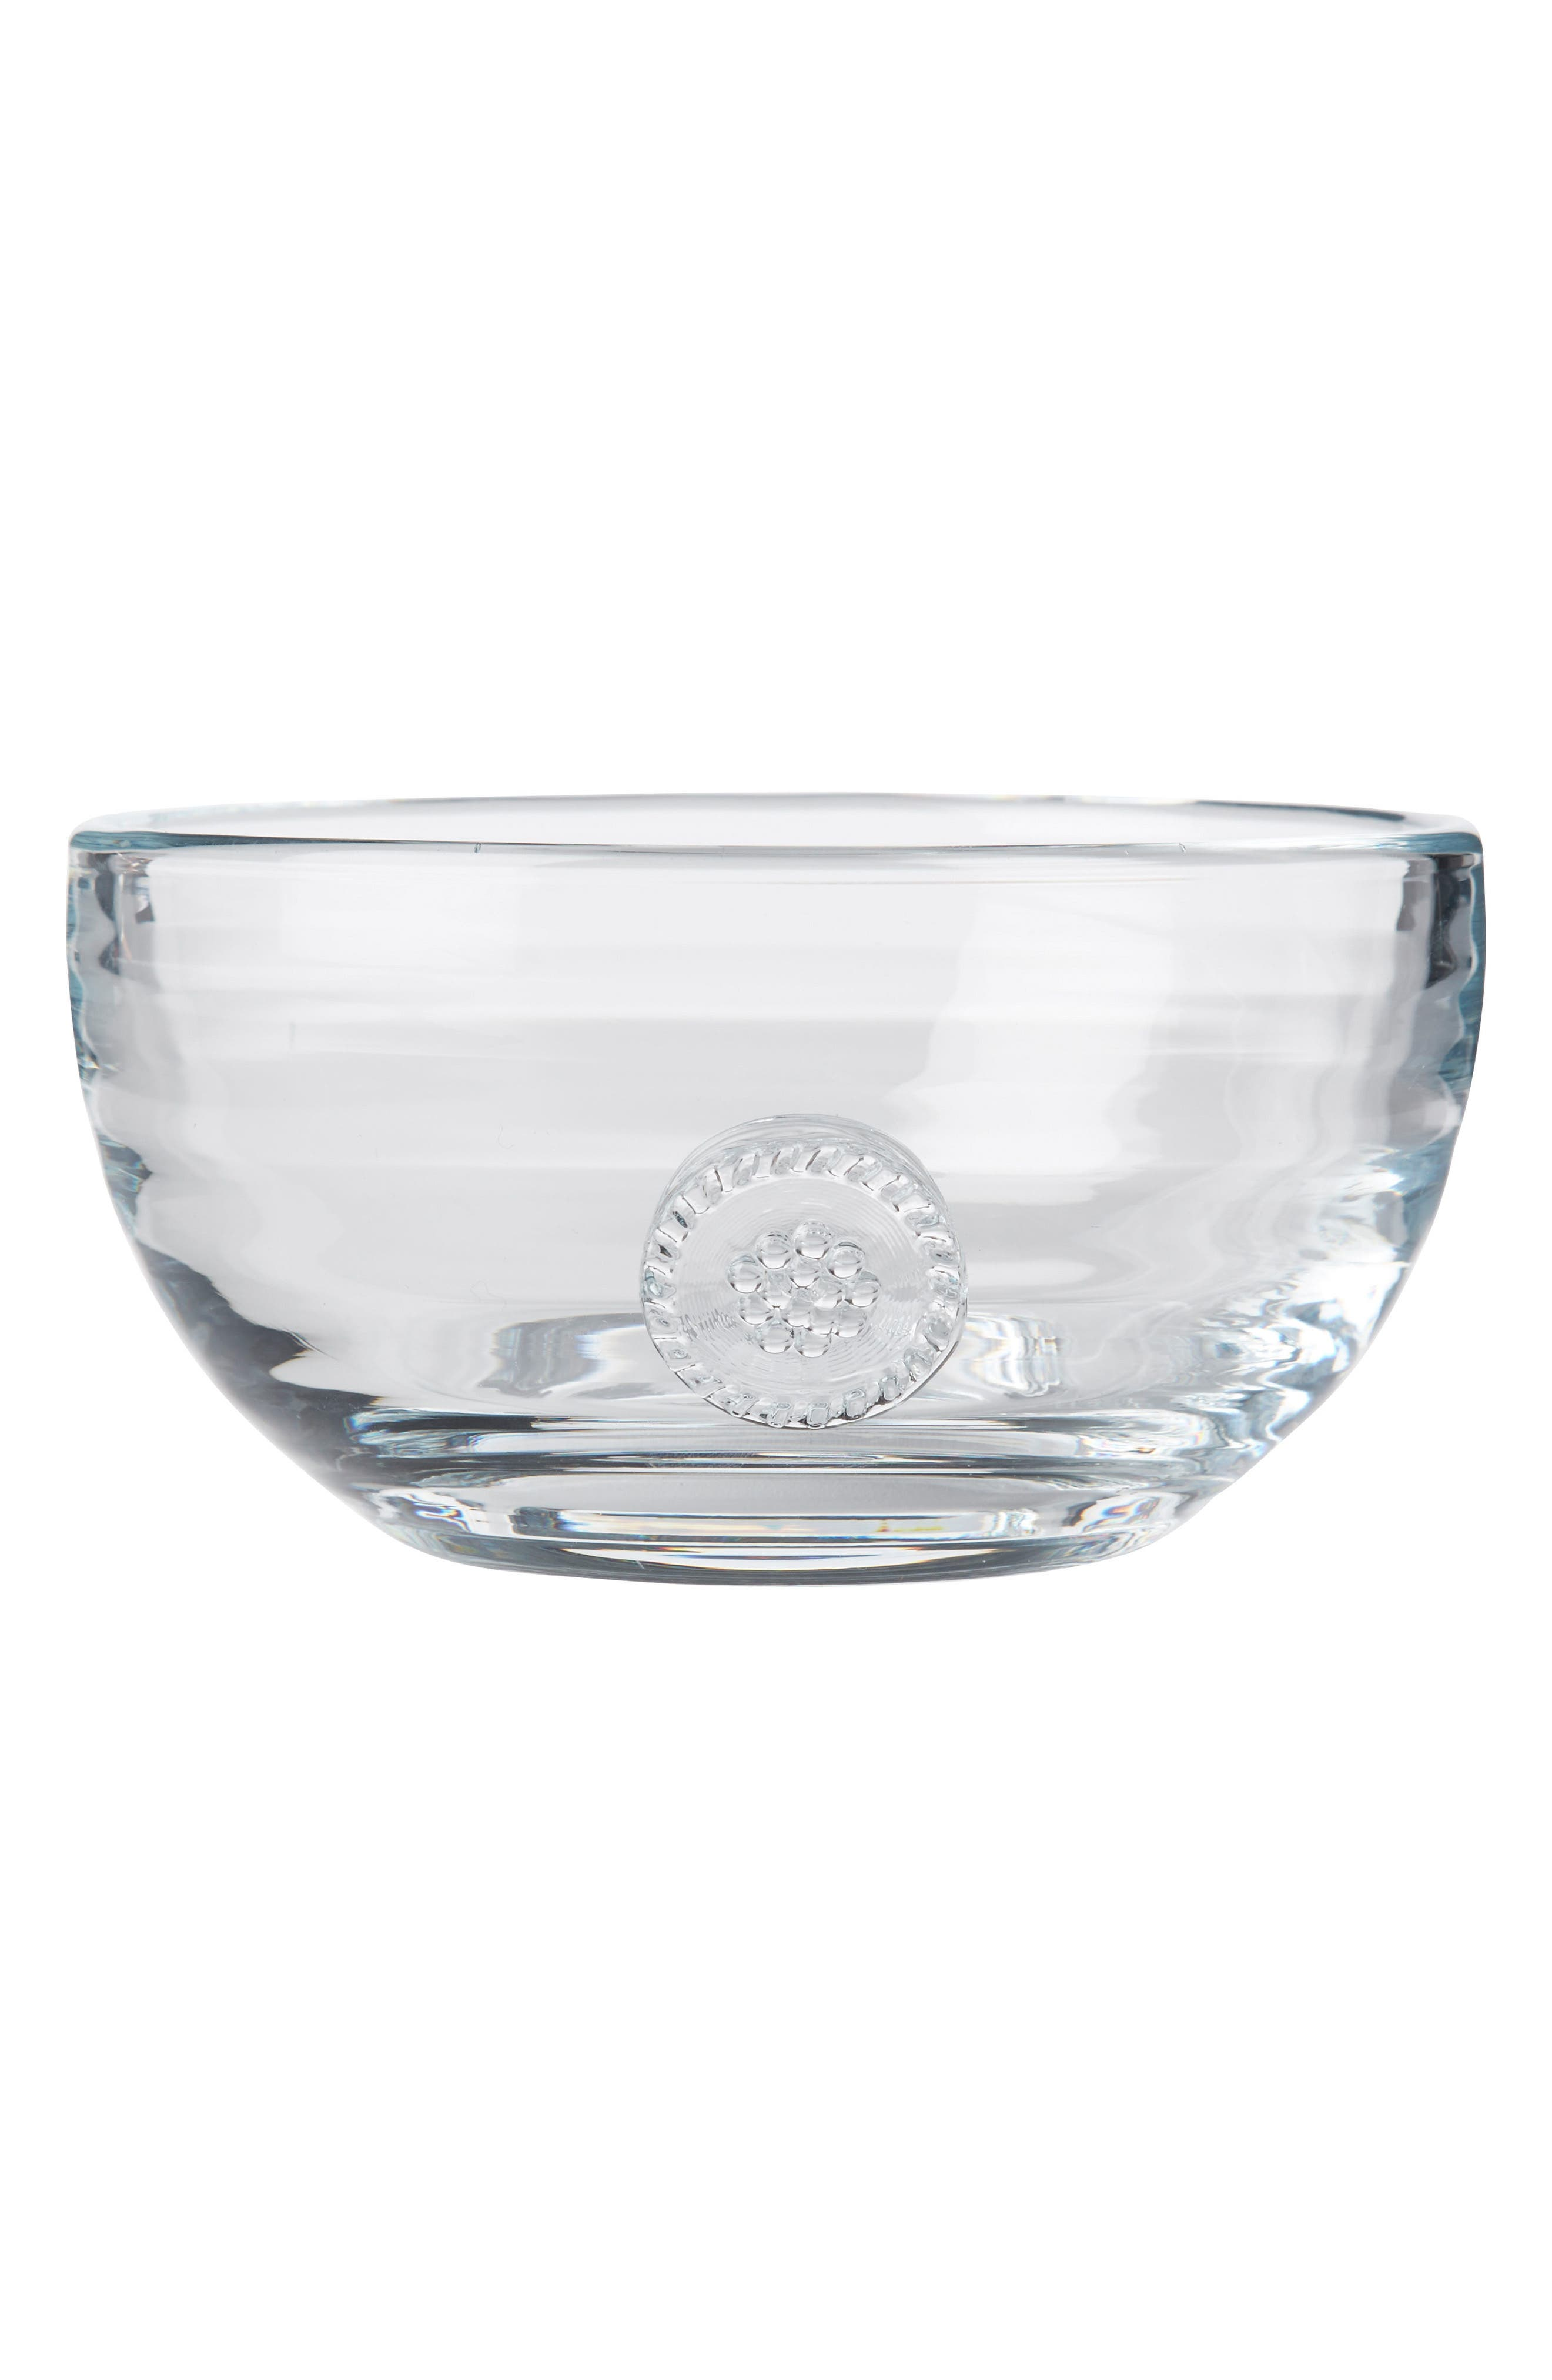 Berry & Thread Small Glass Bowl,                         Main,                         color, CLEAR